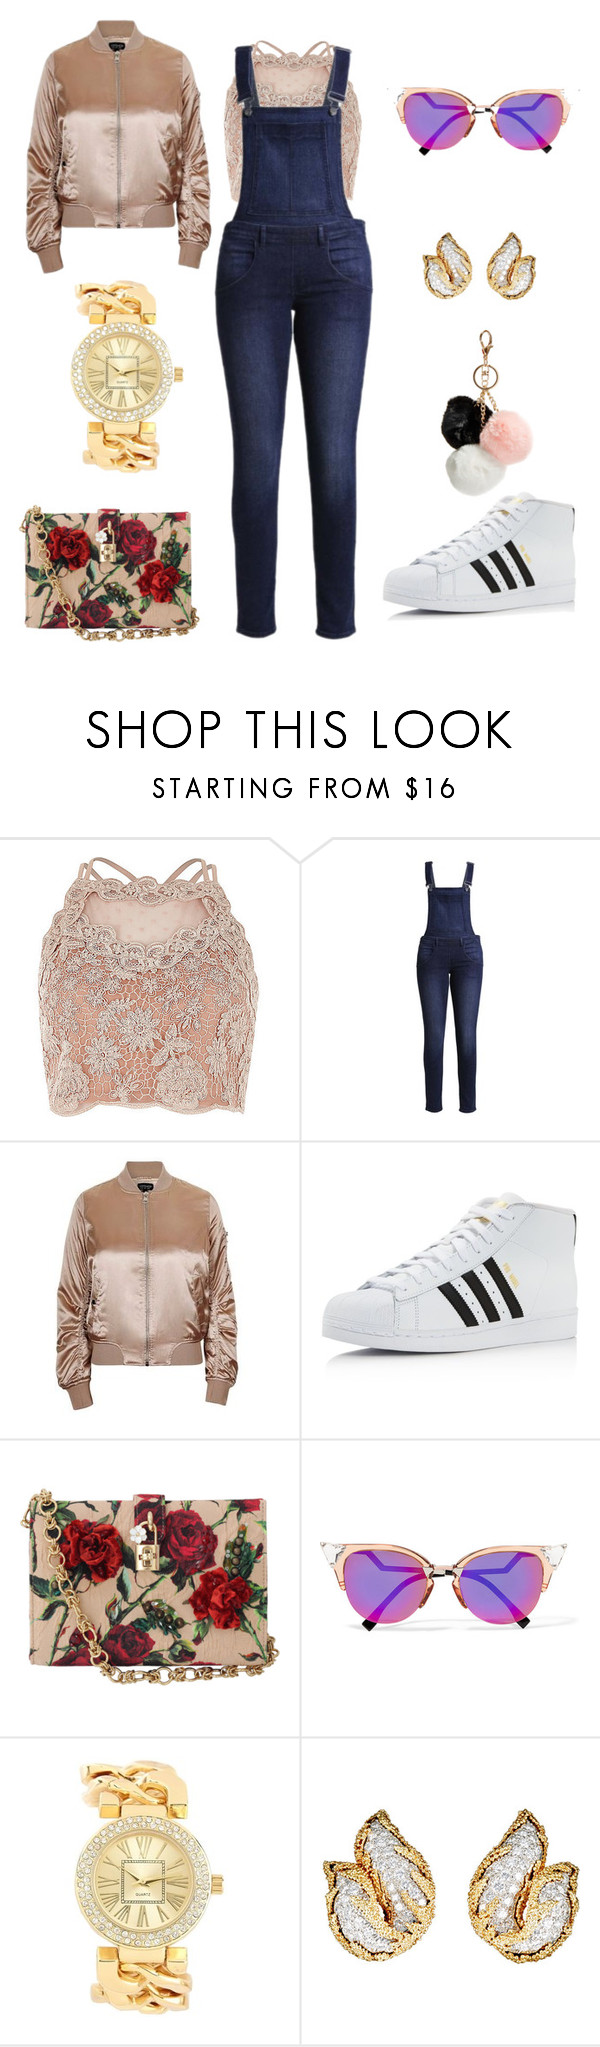 """""""going to central park to steal your baby daddy"""" by telfortsamantha ❤ liked on Polyvore featuring Cheap Monday, Topshop, adidas, Dolce&Gabbana, Fendi, Charlotte Russe, Mahnaz Ispahani and GUESS"""